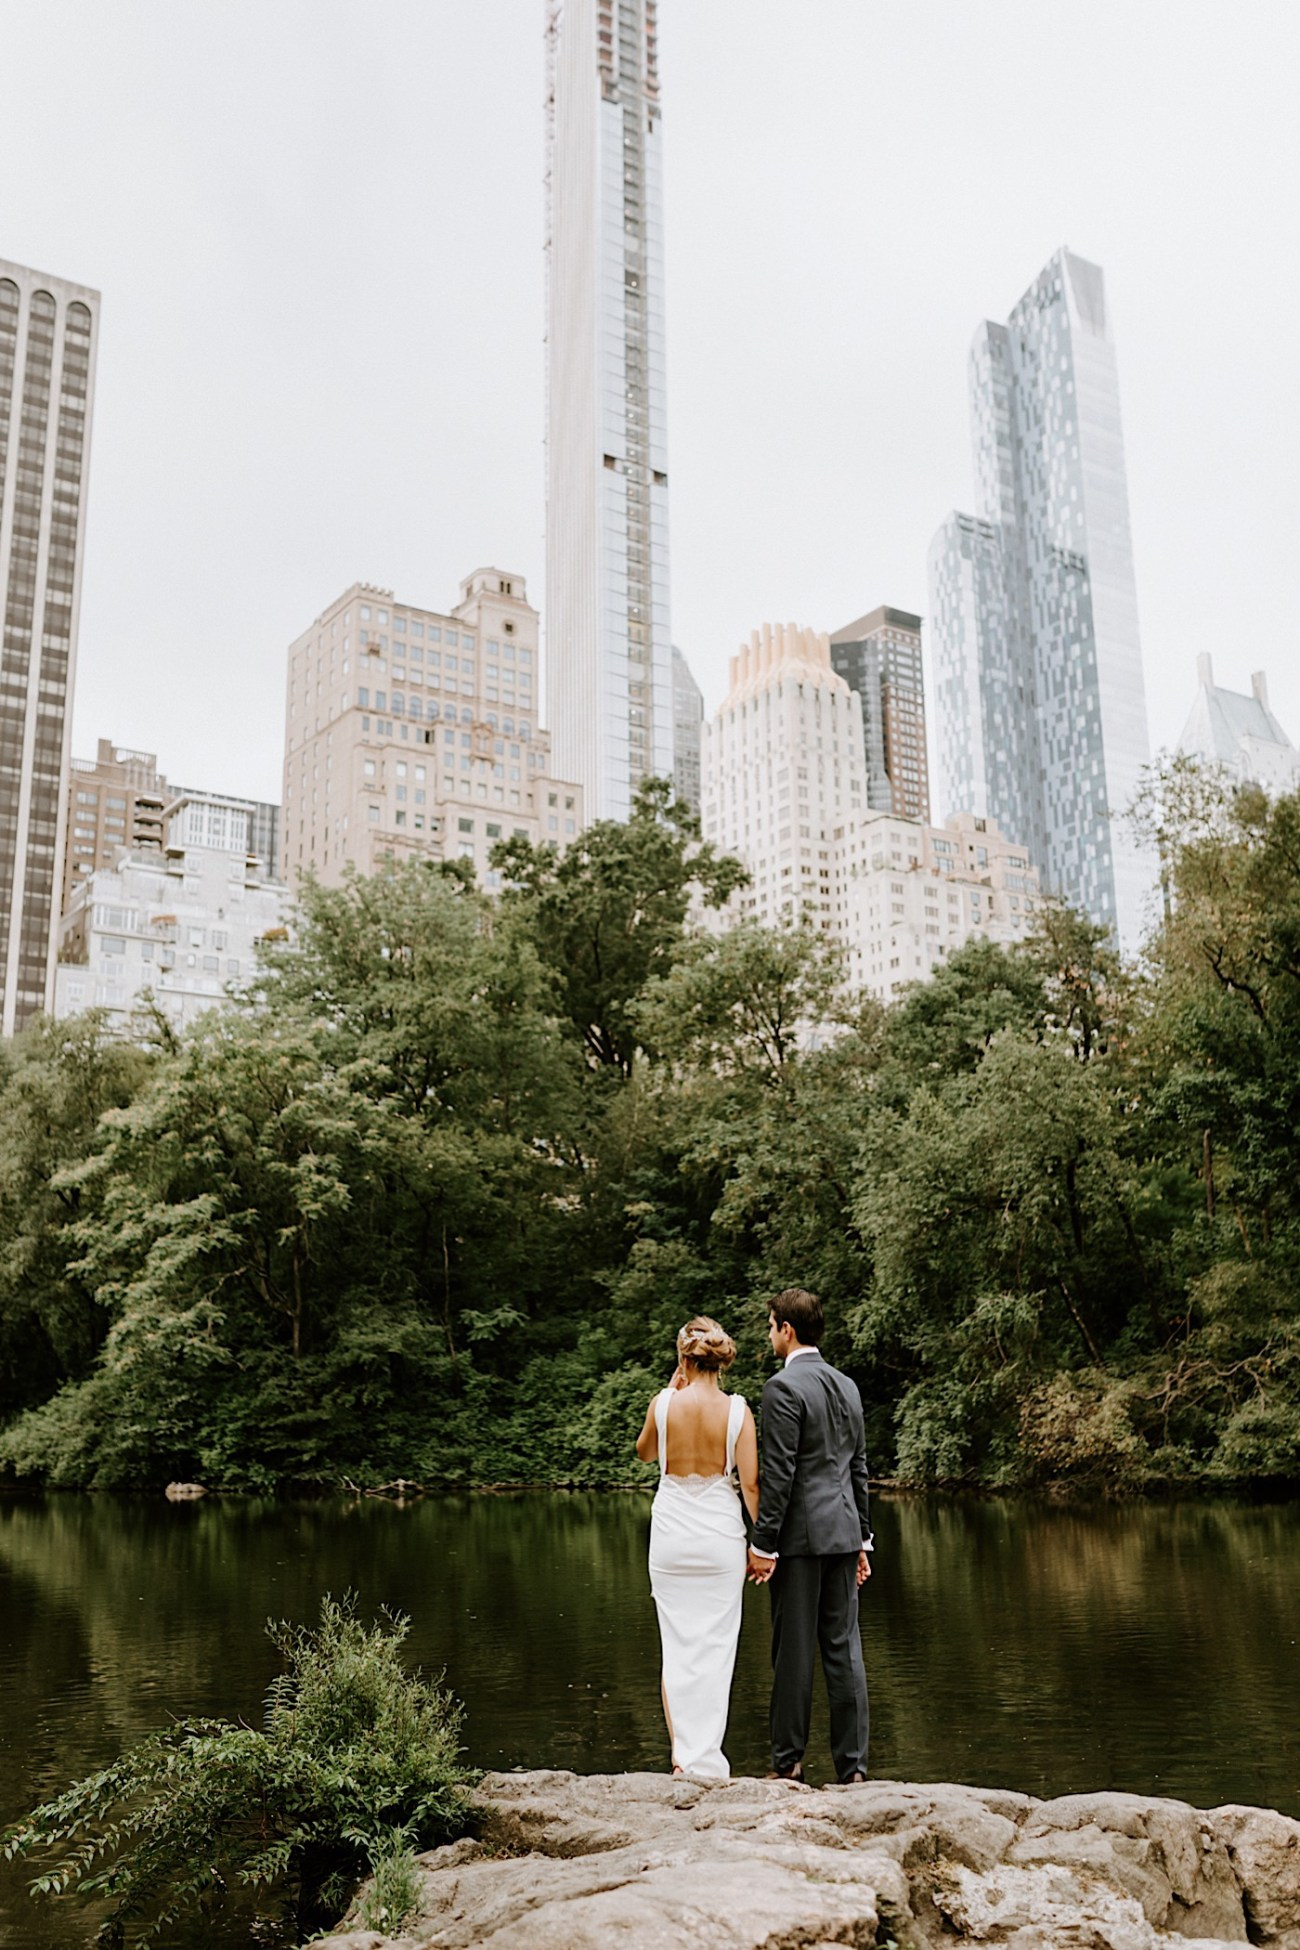 Bride and Groom standing in front of the Manhattan Skyline in Central Park, Best views in Central Park for your elopement wedding portraits, Anais Possamai Photography